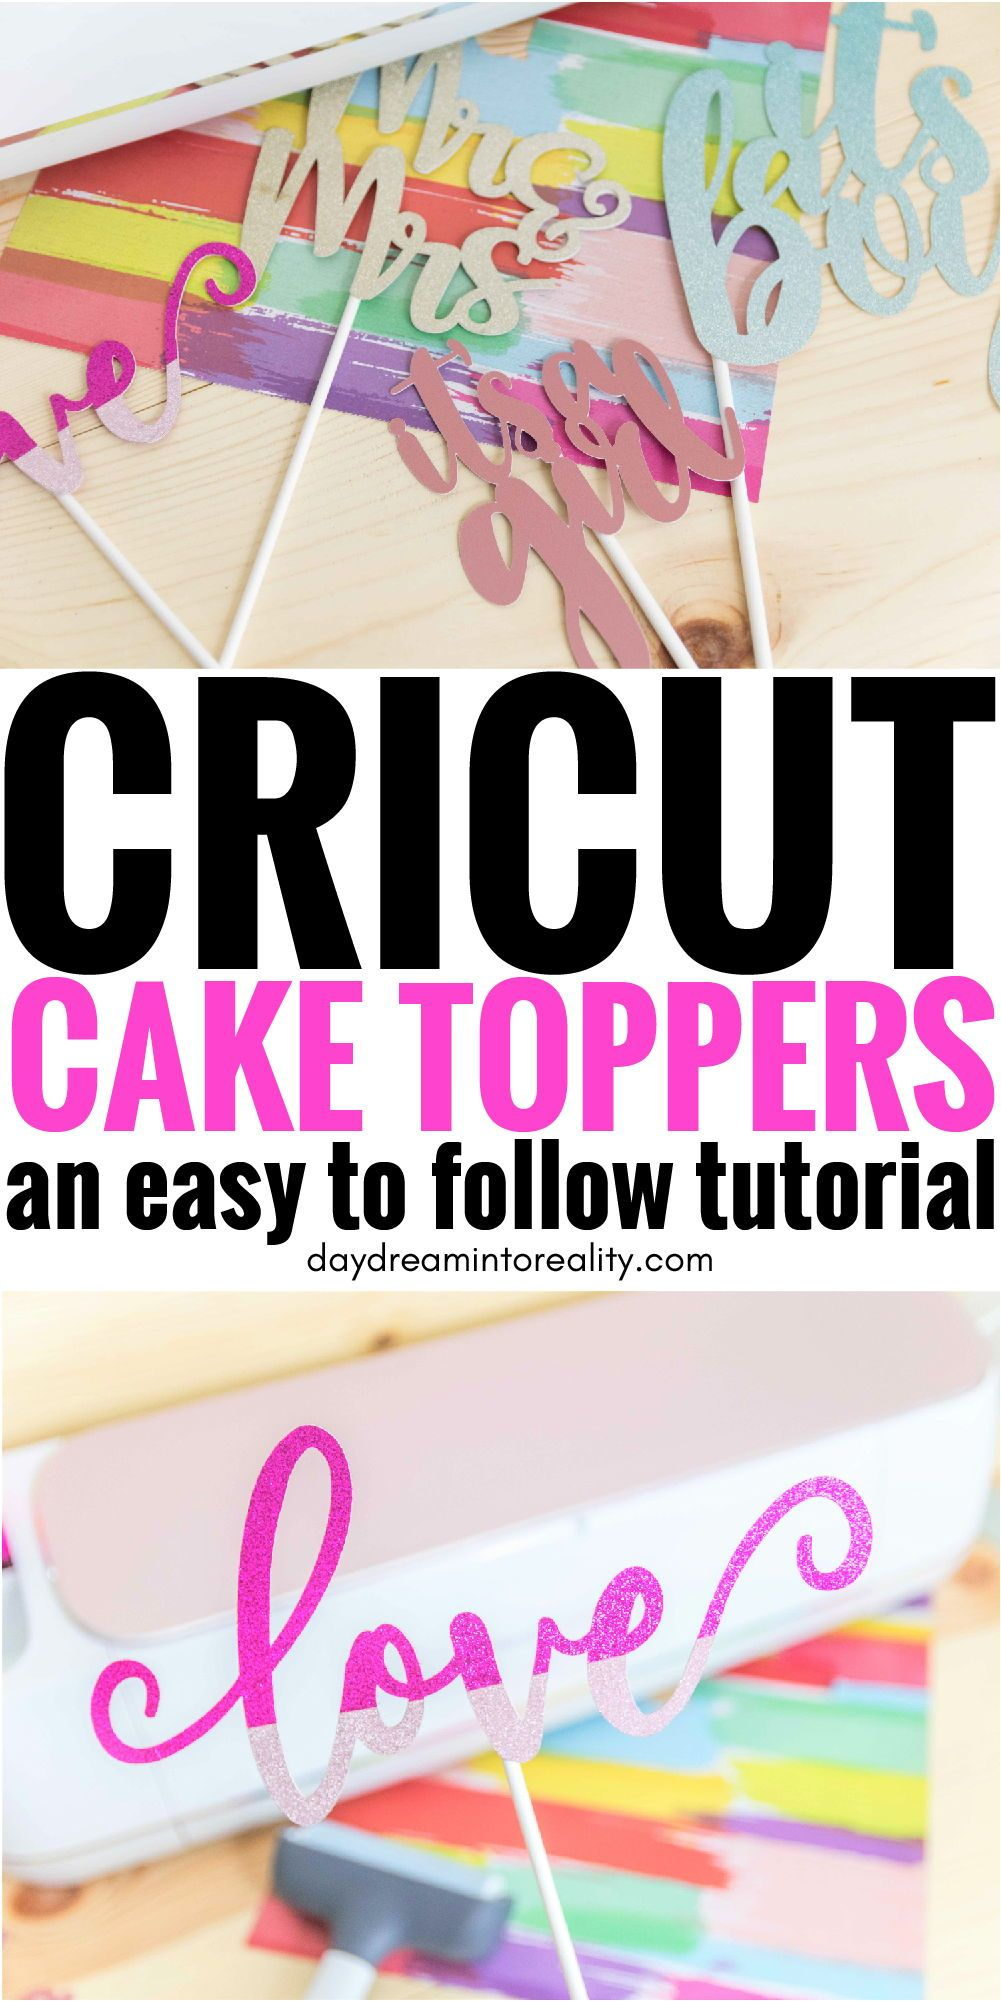 Make Cake Toppers With Cricut #cricuthacks